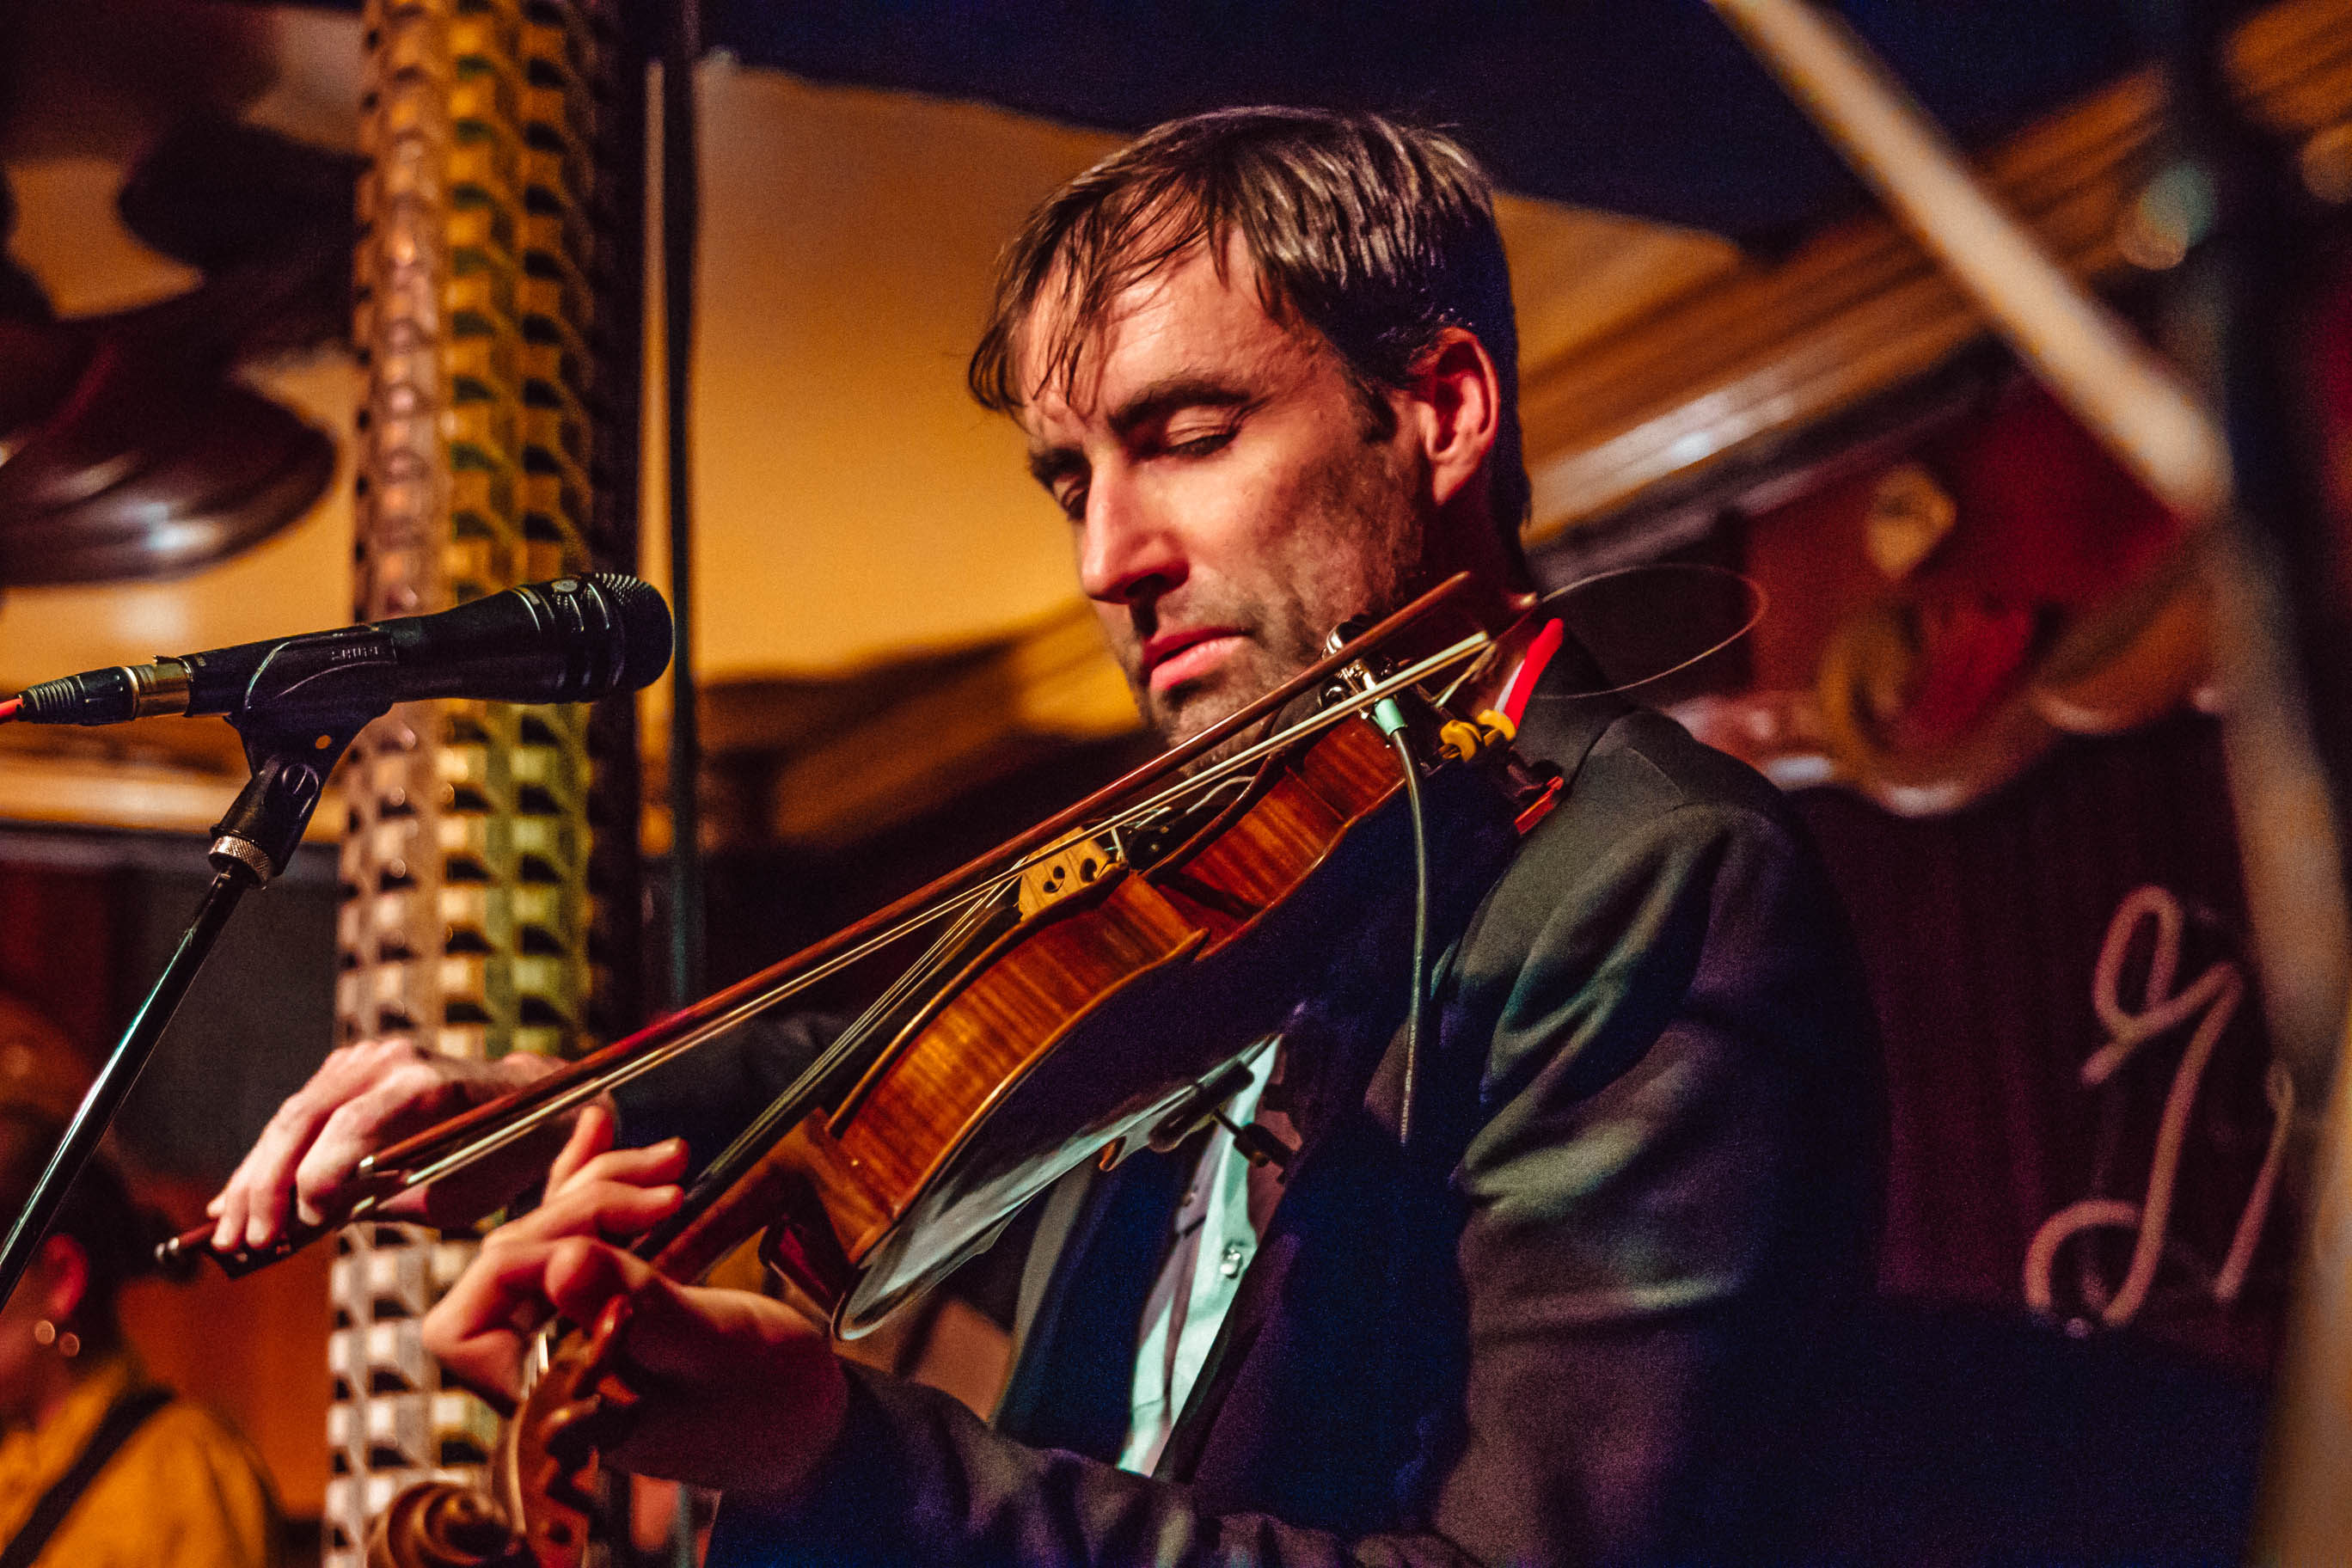 REVIEW: Andrew Bird at the Green Mill was an intimate and emotional experience